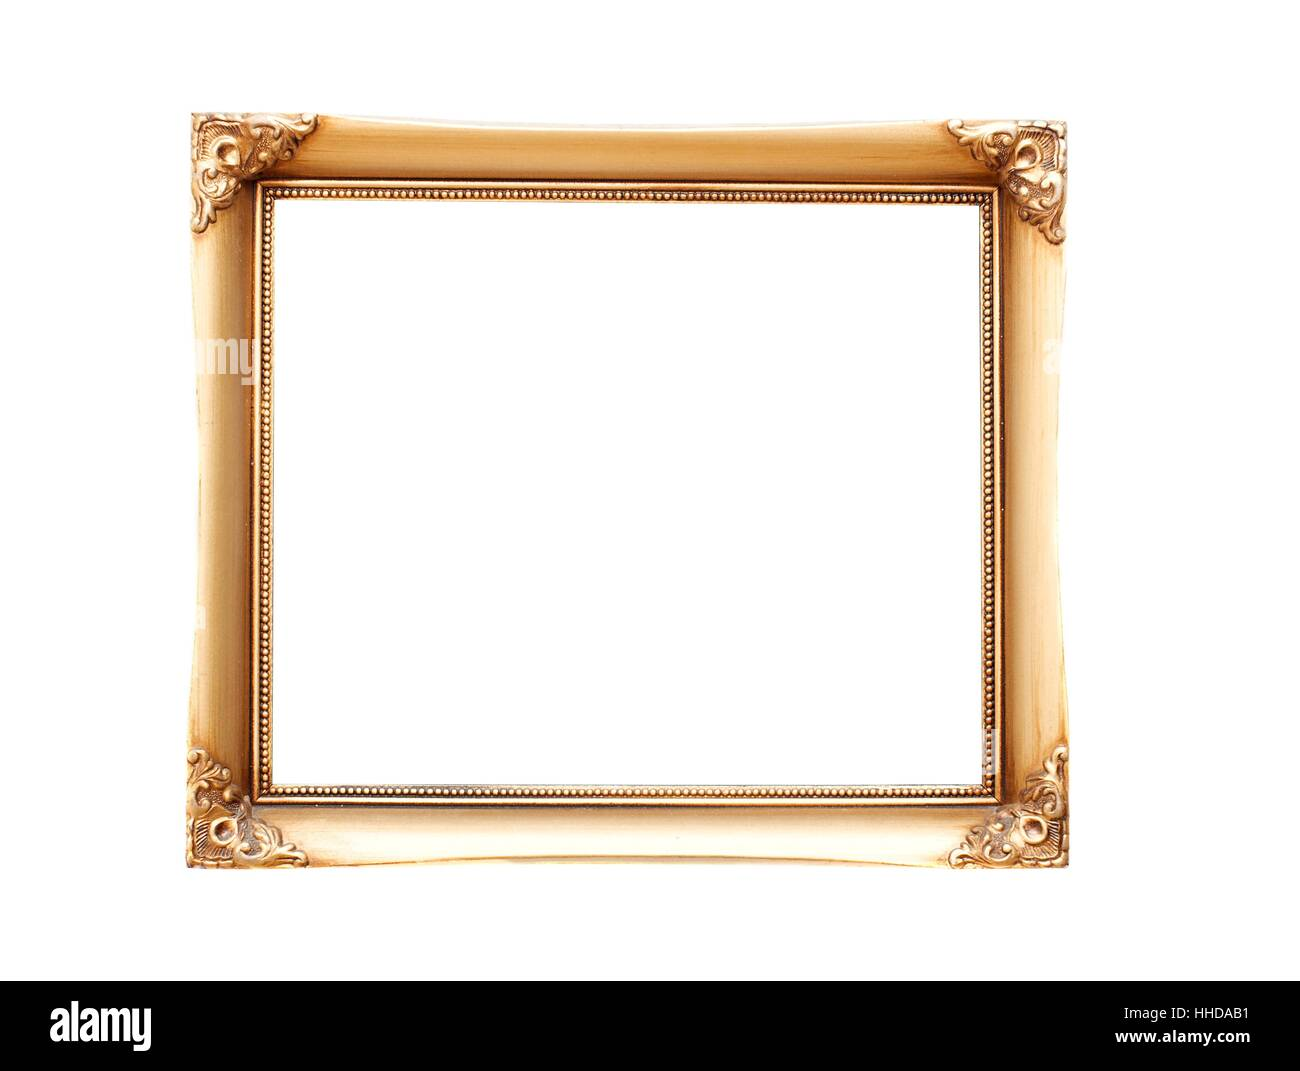 wood, wall, decoration, framed, photo, picture, image, copy, deduction, frame, - Stock Image